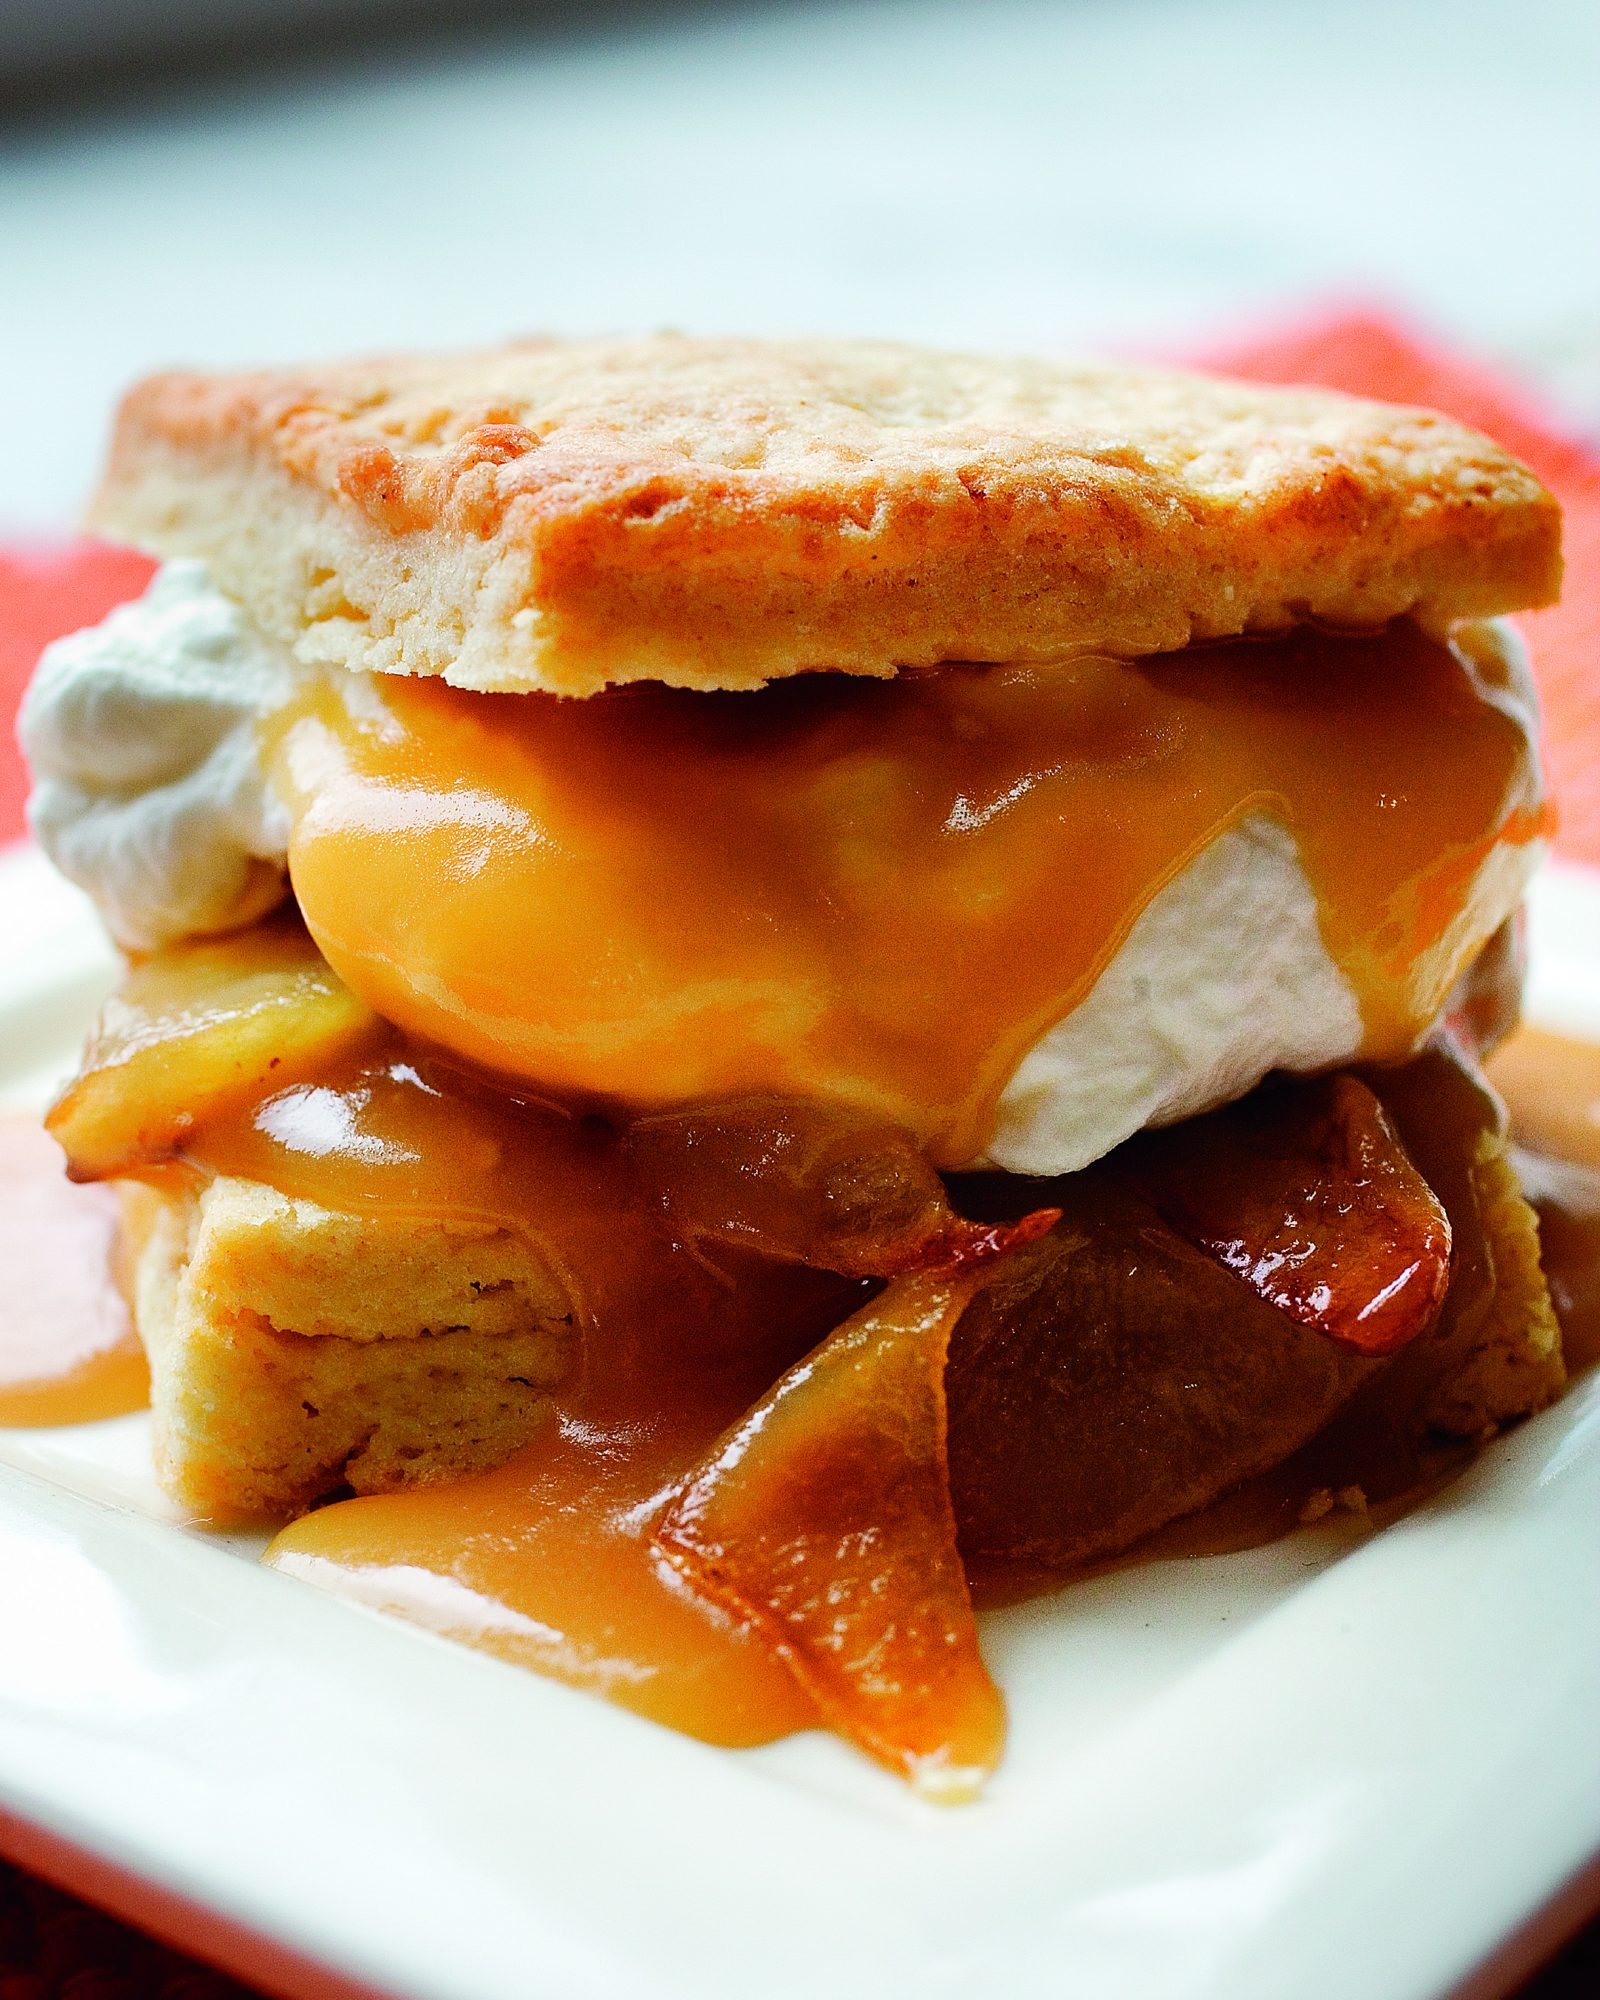 Roasted Pear Shortcakes with Warm Toffee Sauce